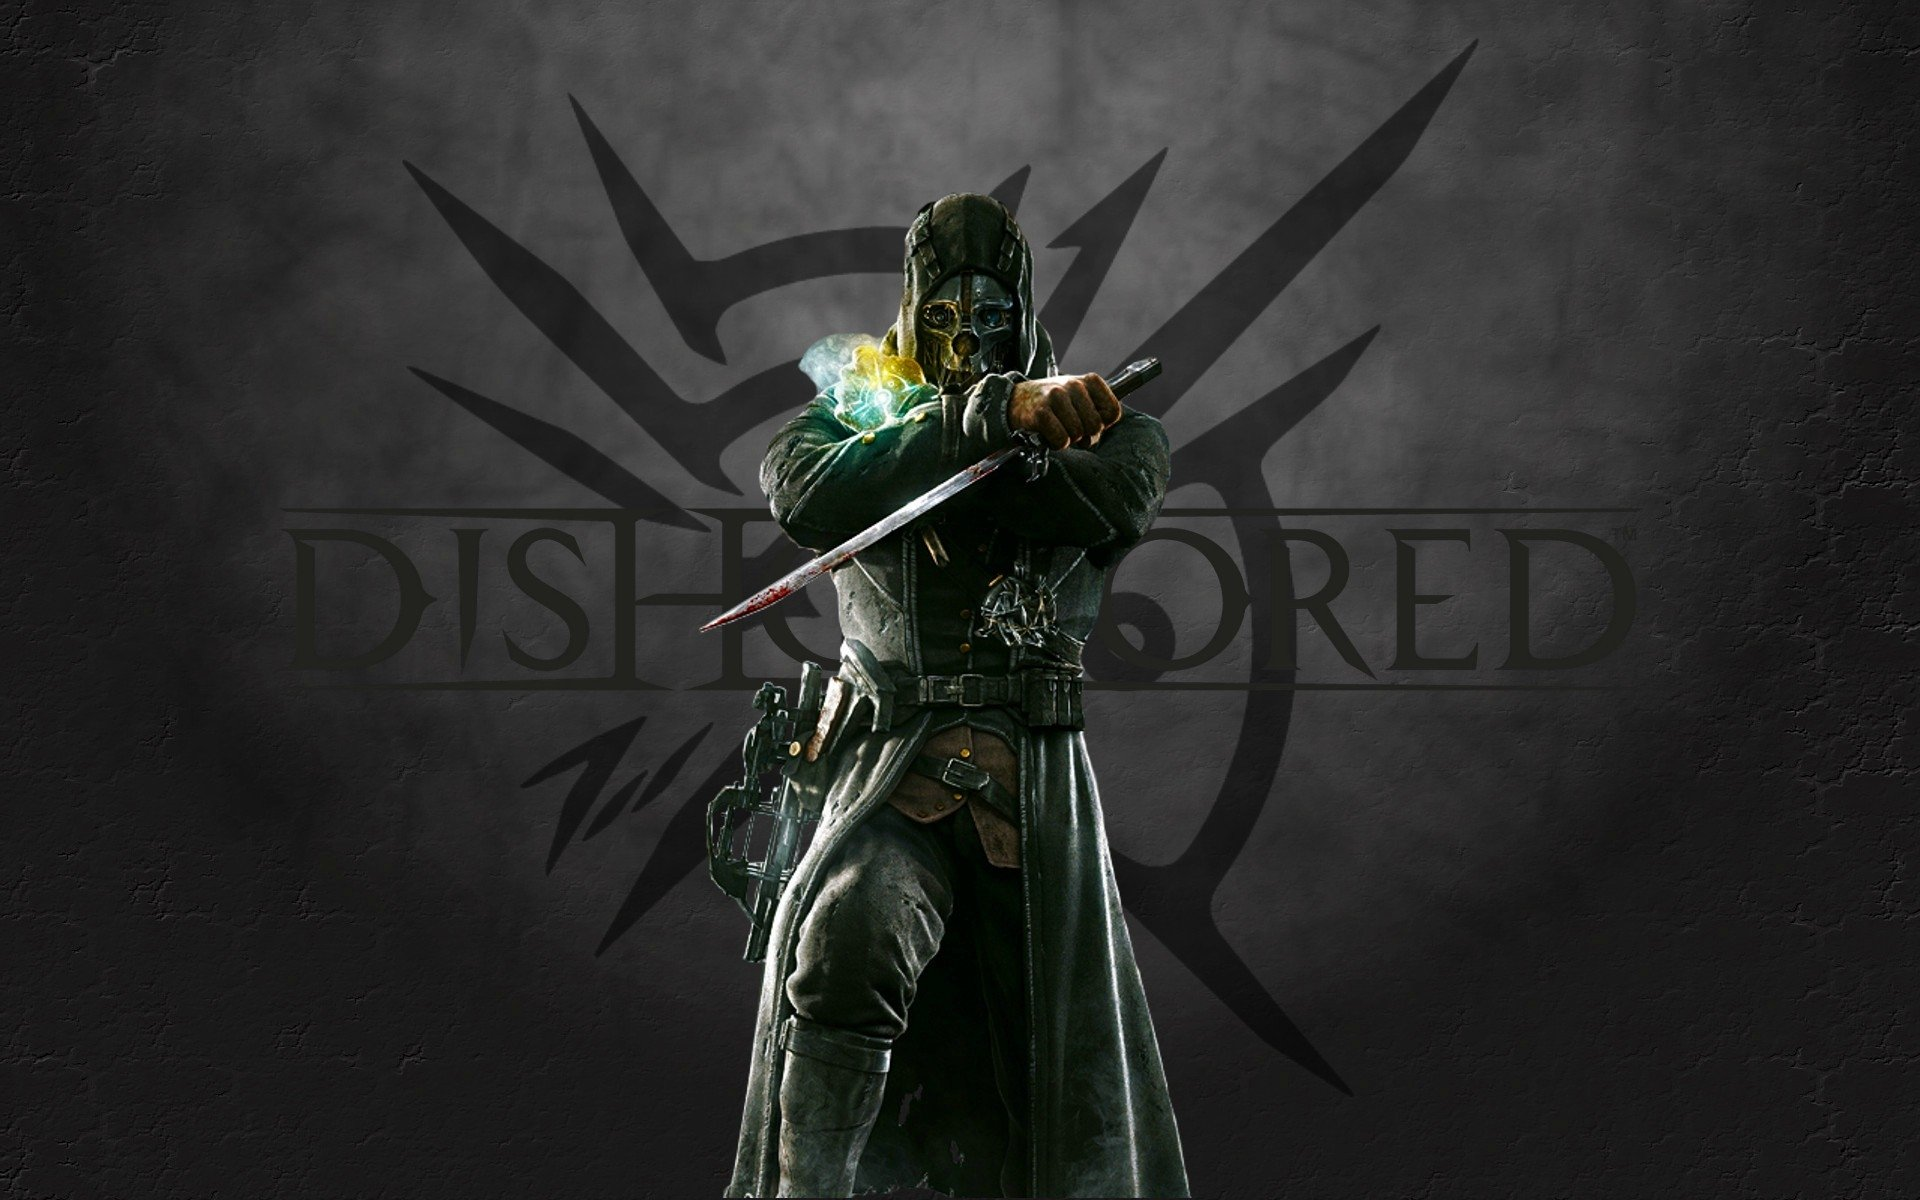 Best Corvo Wallpaper on HipWallpaper Dishonored Corvo